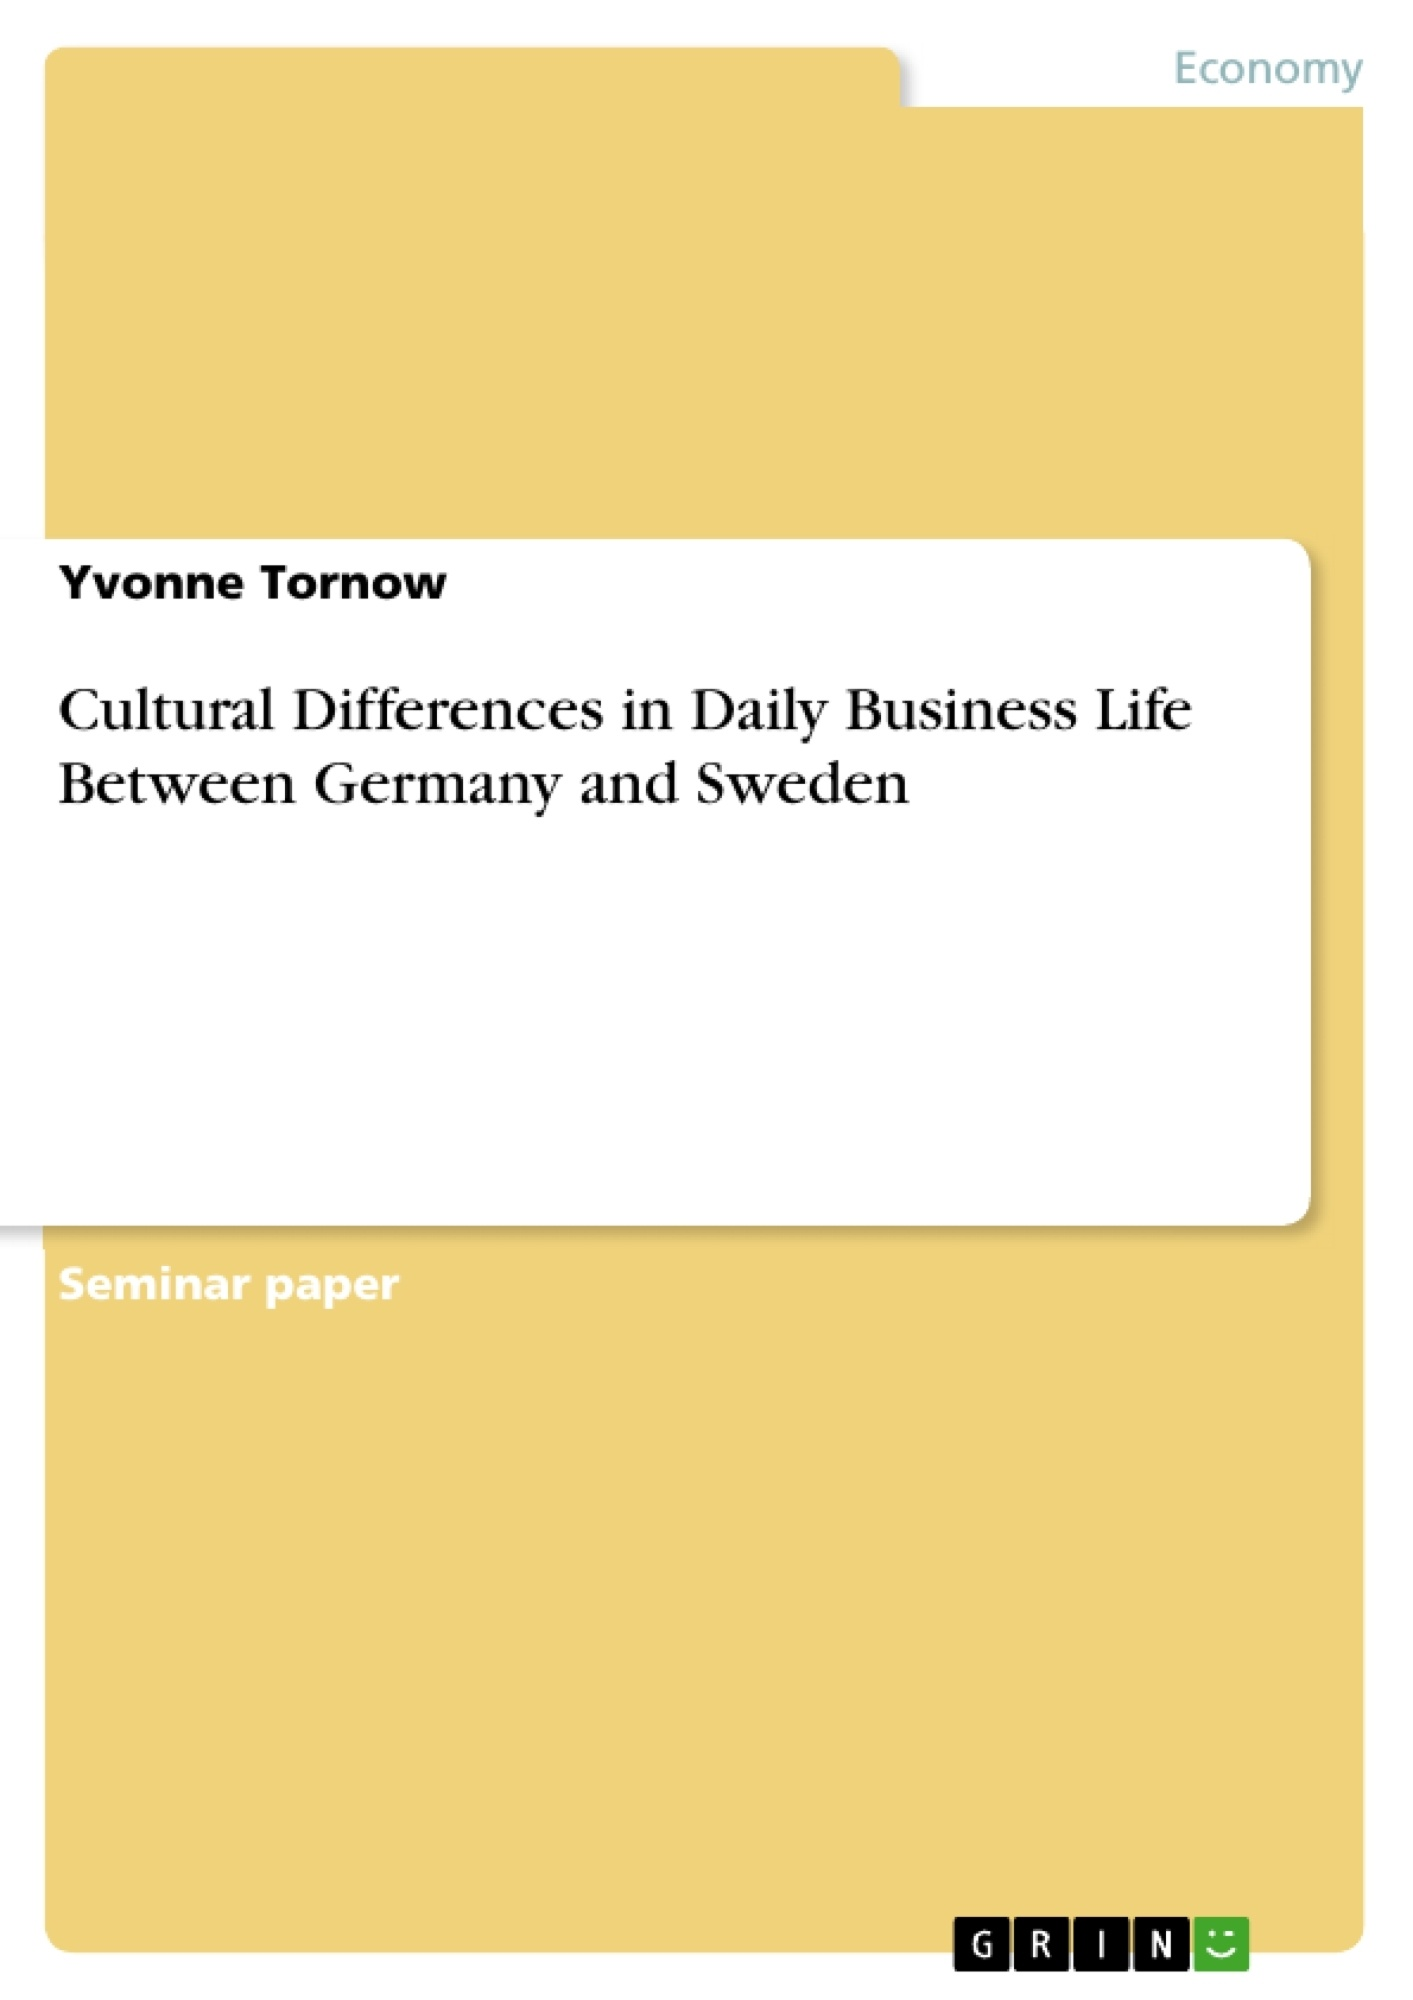 Title: Cultural Differences in Daily Business Life Between Germany and Sweden